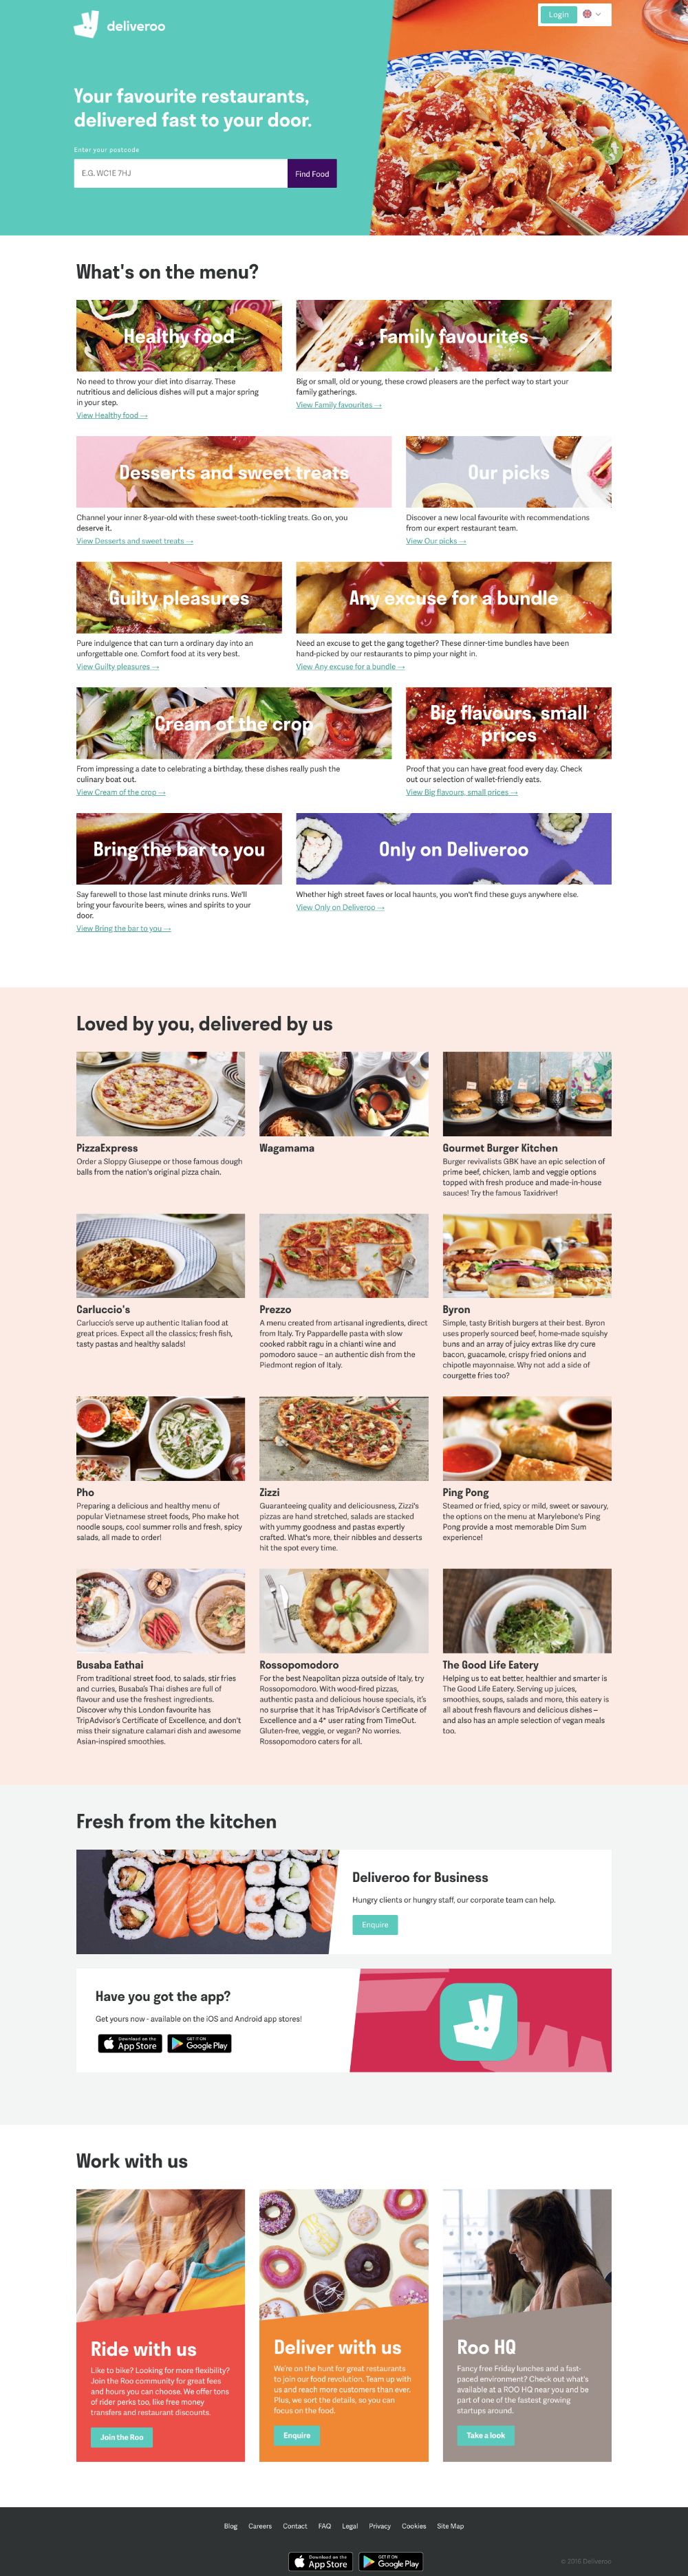 homepage deliveroo 2016